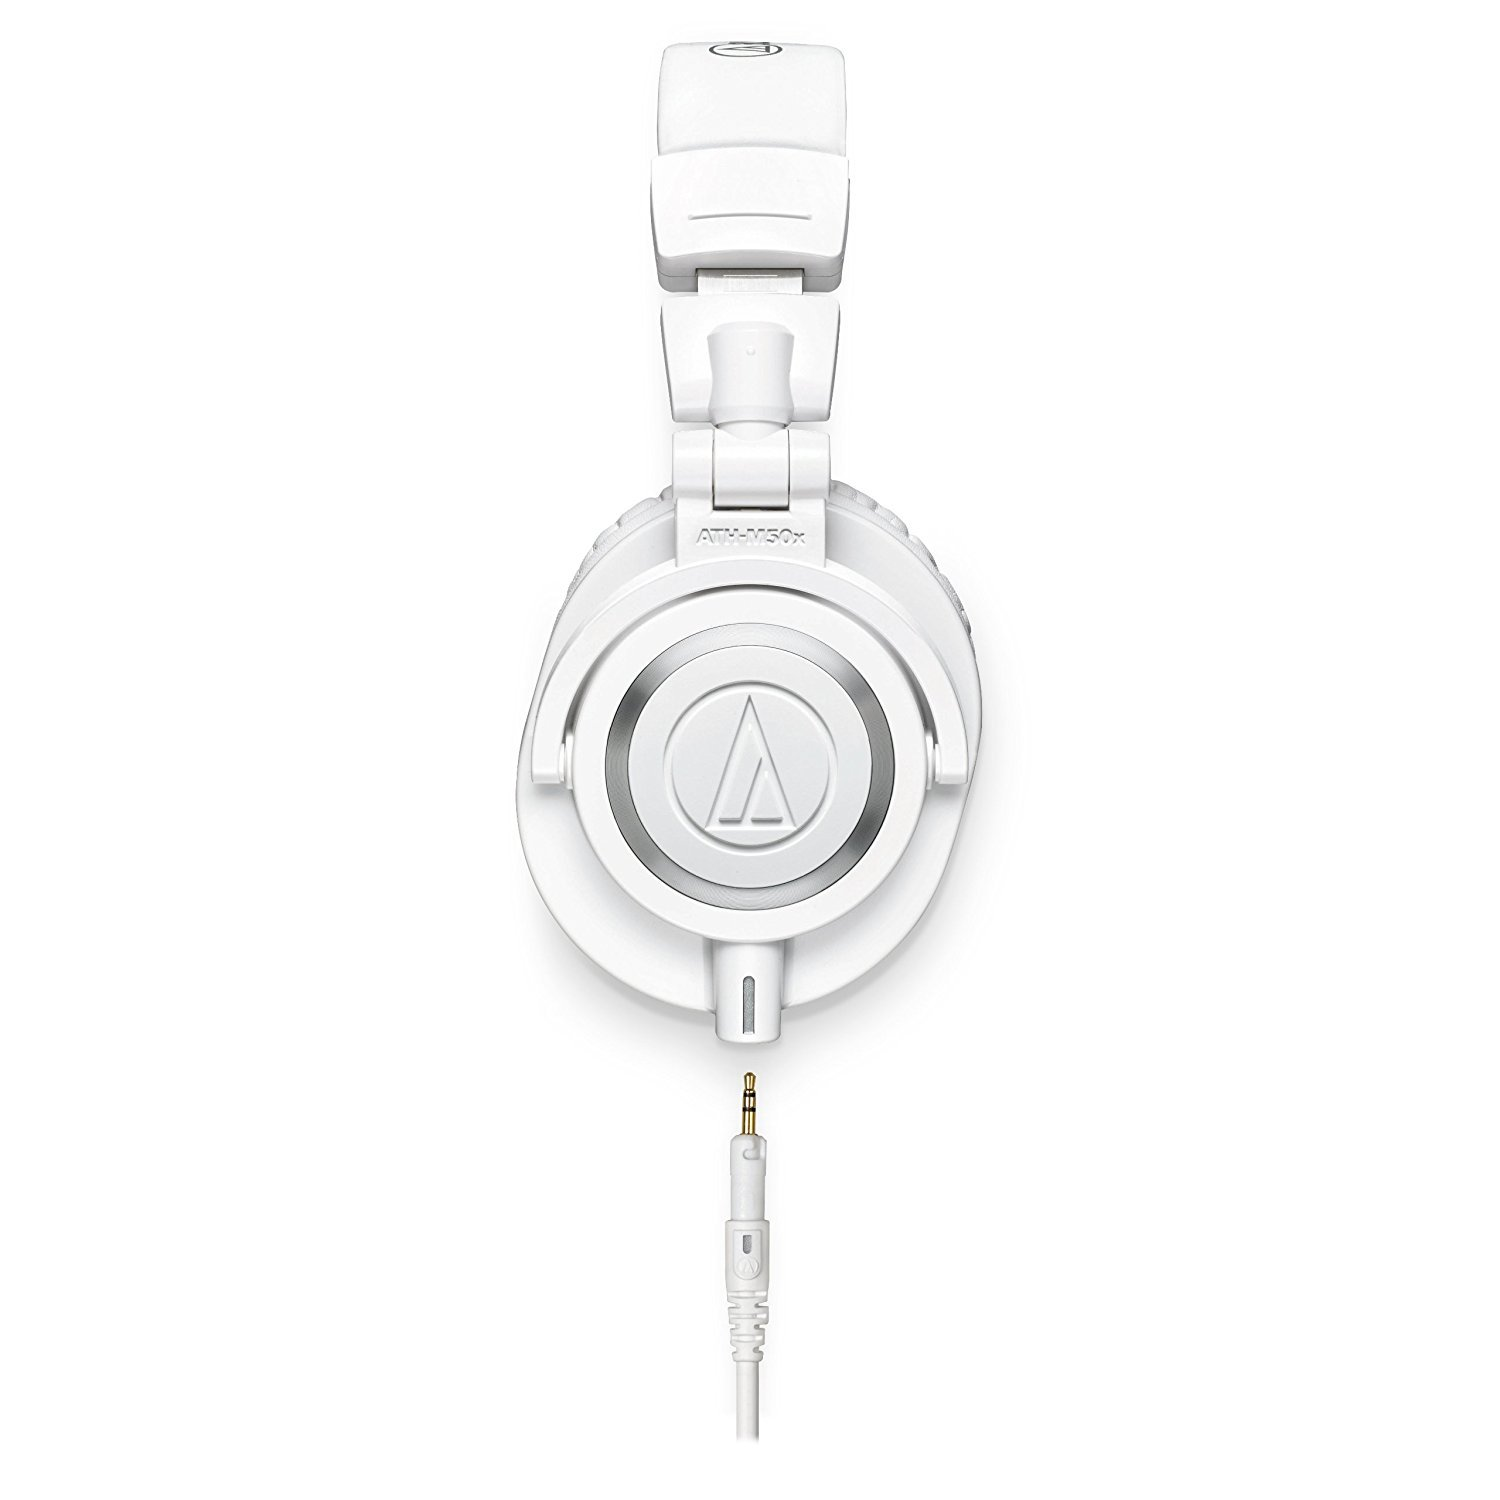 Audio-Technica ATH-M50x Professional Monitor Headphones (White) + Tekline Active Replacement Cable + Headphone Case by K&M (Image #3)